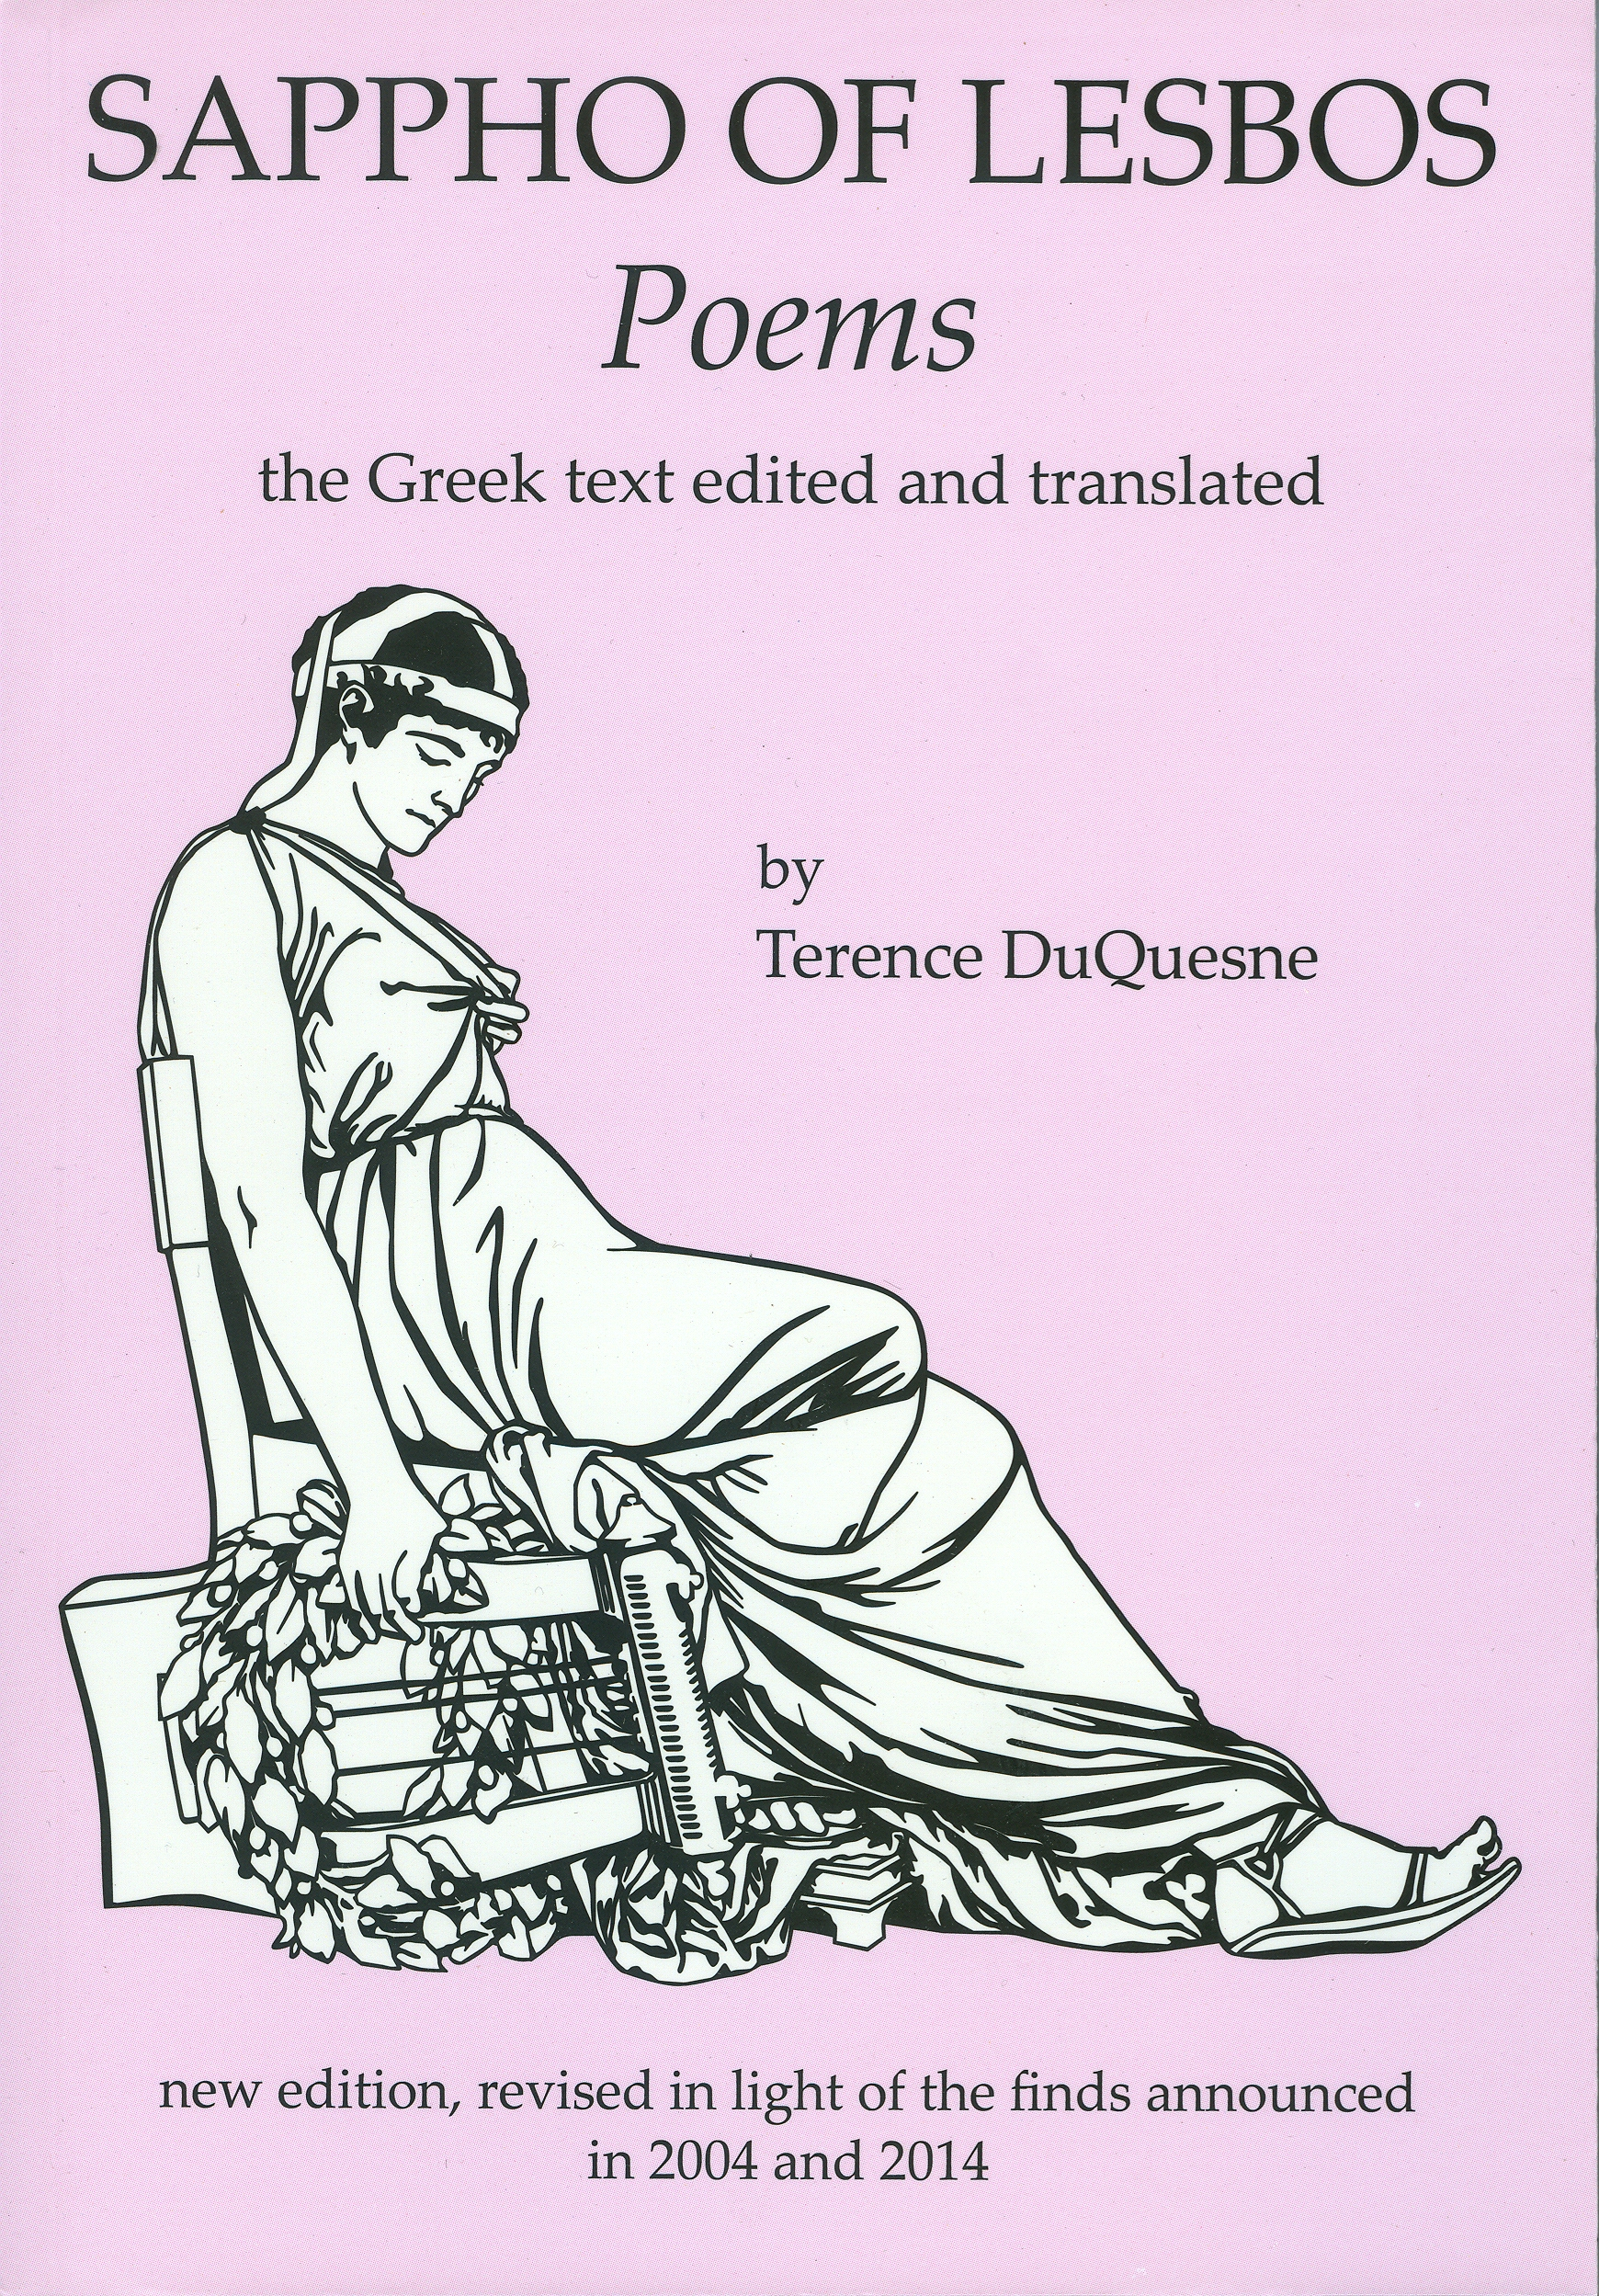 lesbian poetry empasizes on sappho essay Read this psychology essay and over 88,000 other research documents sappho of lesbos and audre lorde sappho of lesbos and audre lorde how is sappho of lesbos different from and similar to the contemporary poet, audre.